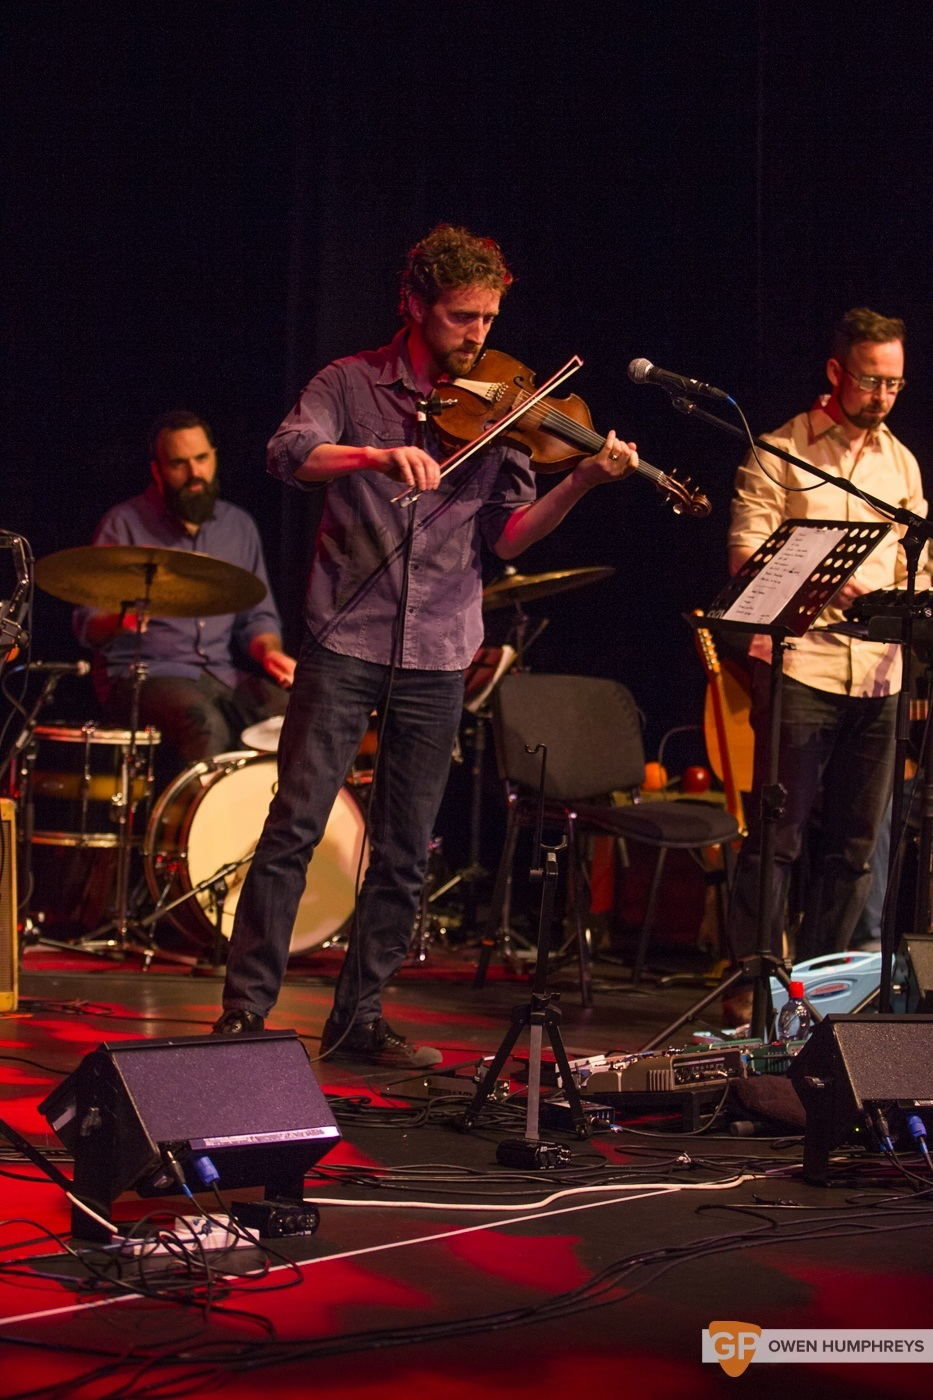 Colm Mac Con Iomaire at The Pavilion Theatre by Owen Humphreys (7 of 12)